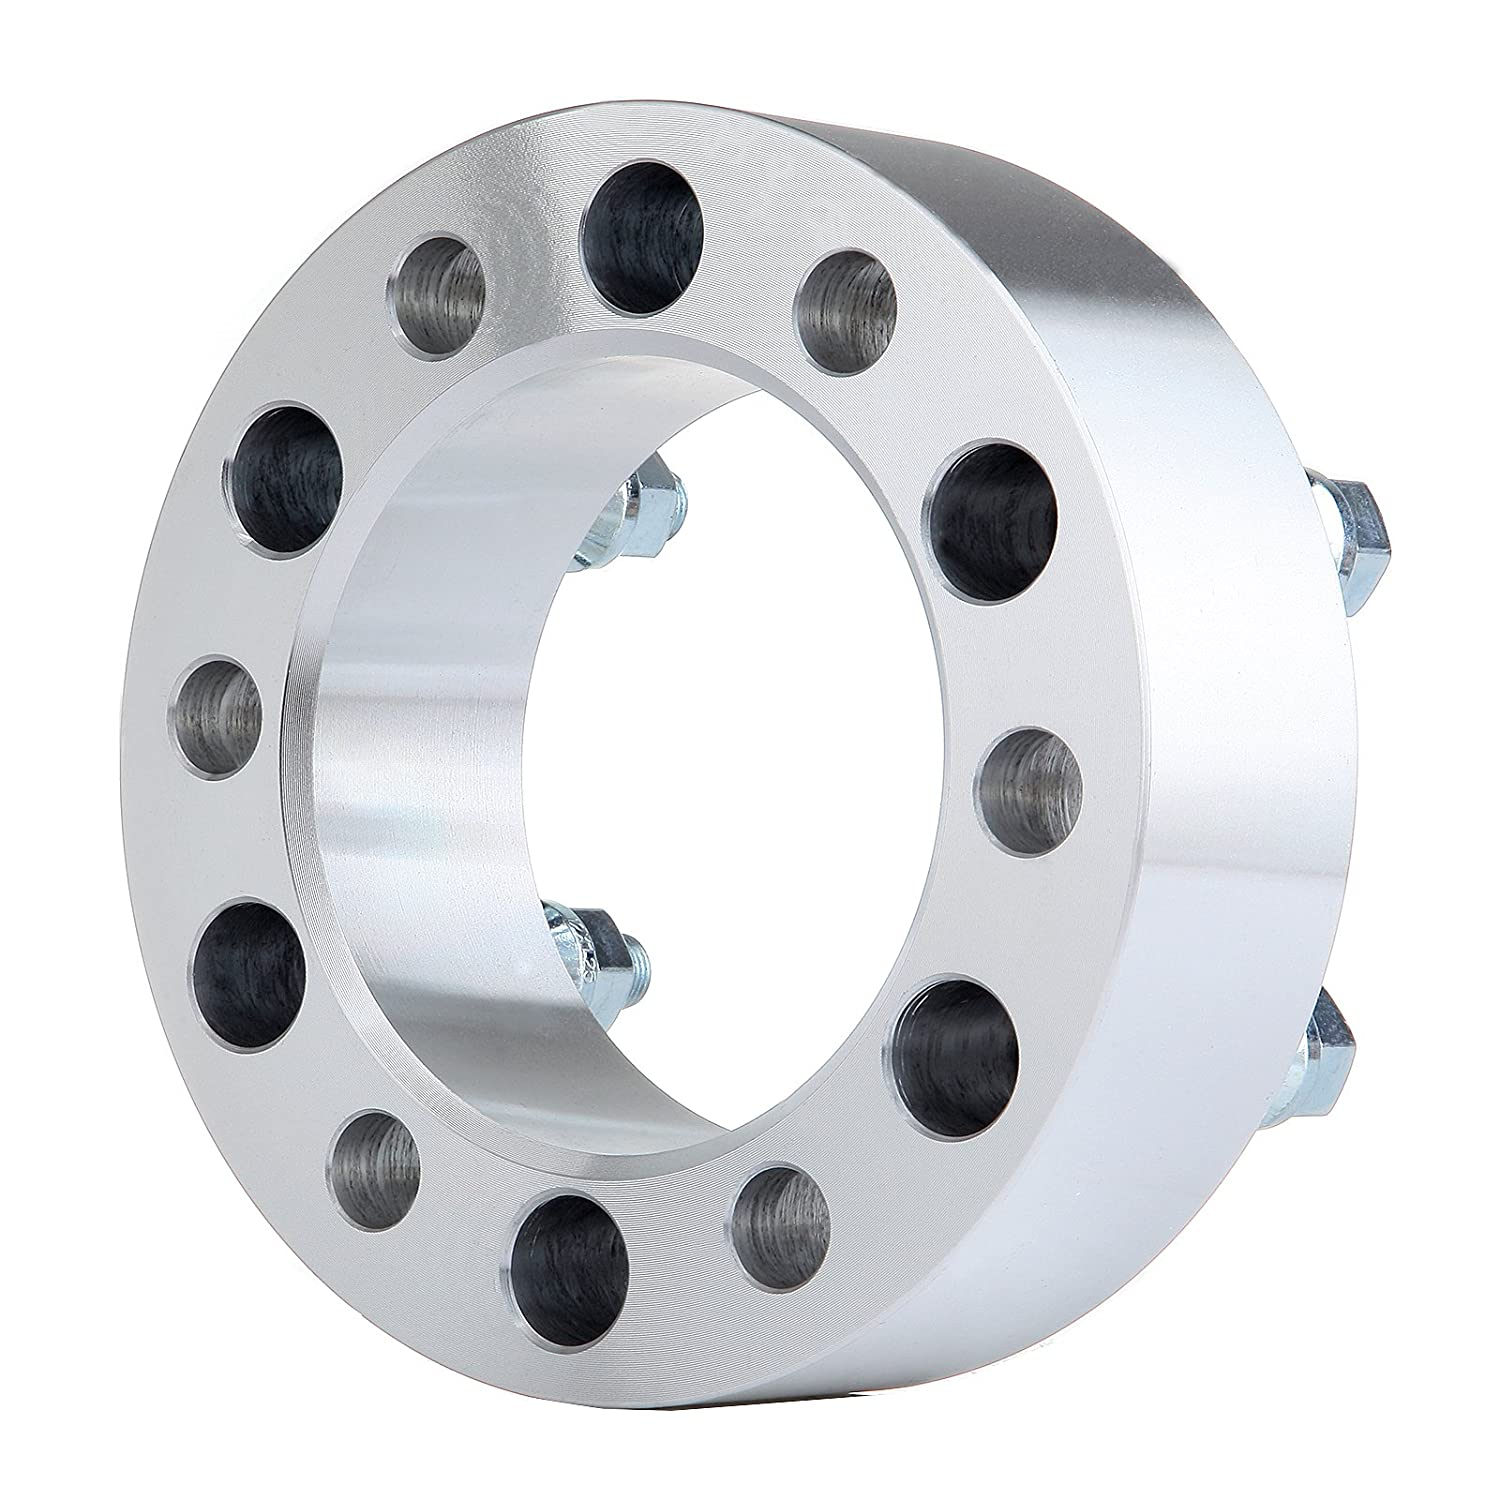 12x1.25 Studs 2X ECCPP 2 inch 50mm Wheel Spacer 6x5.5 to 6x5.5 6x139.7mm to 6x139.7mm 108mm 6 Lug fits for Nissan Armada Nissan Titan